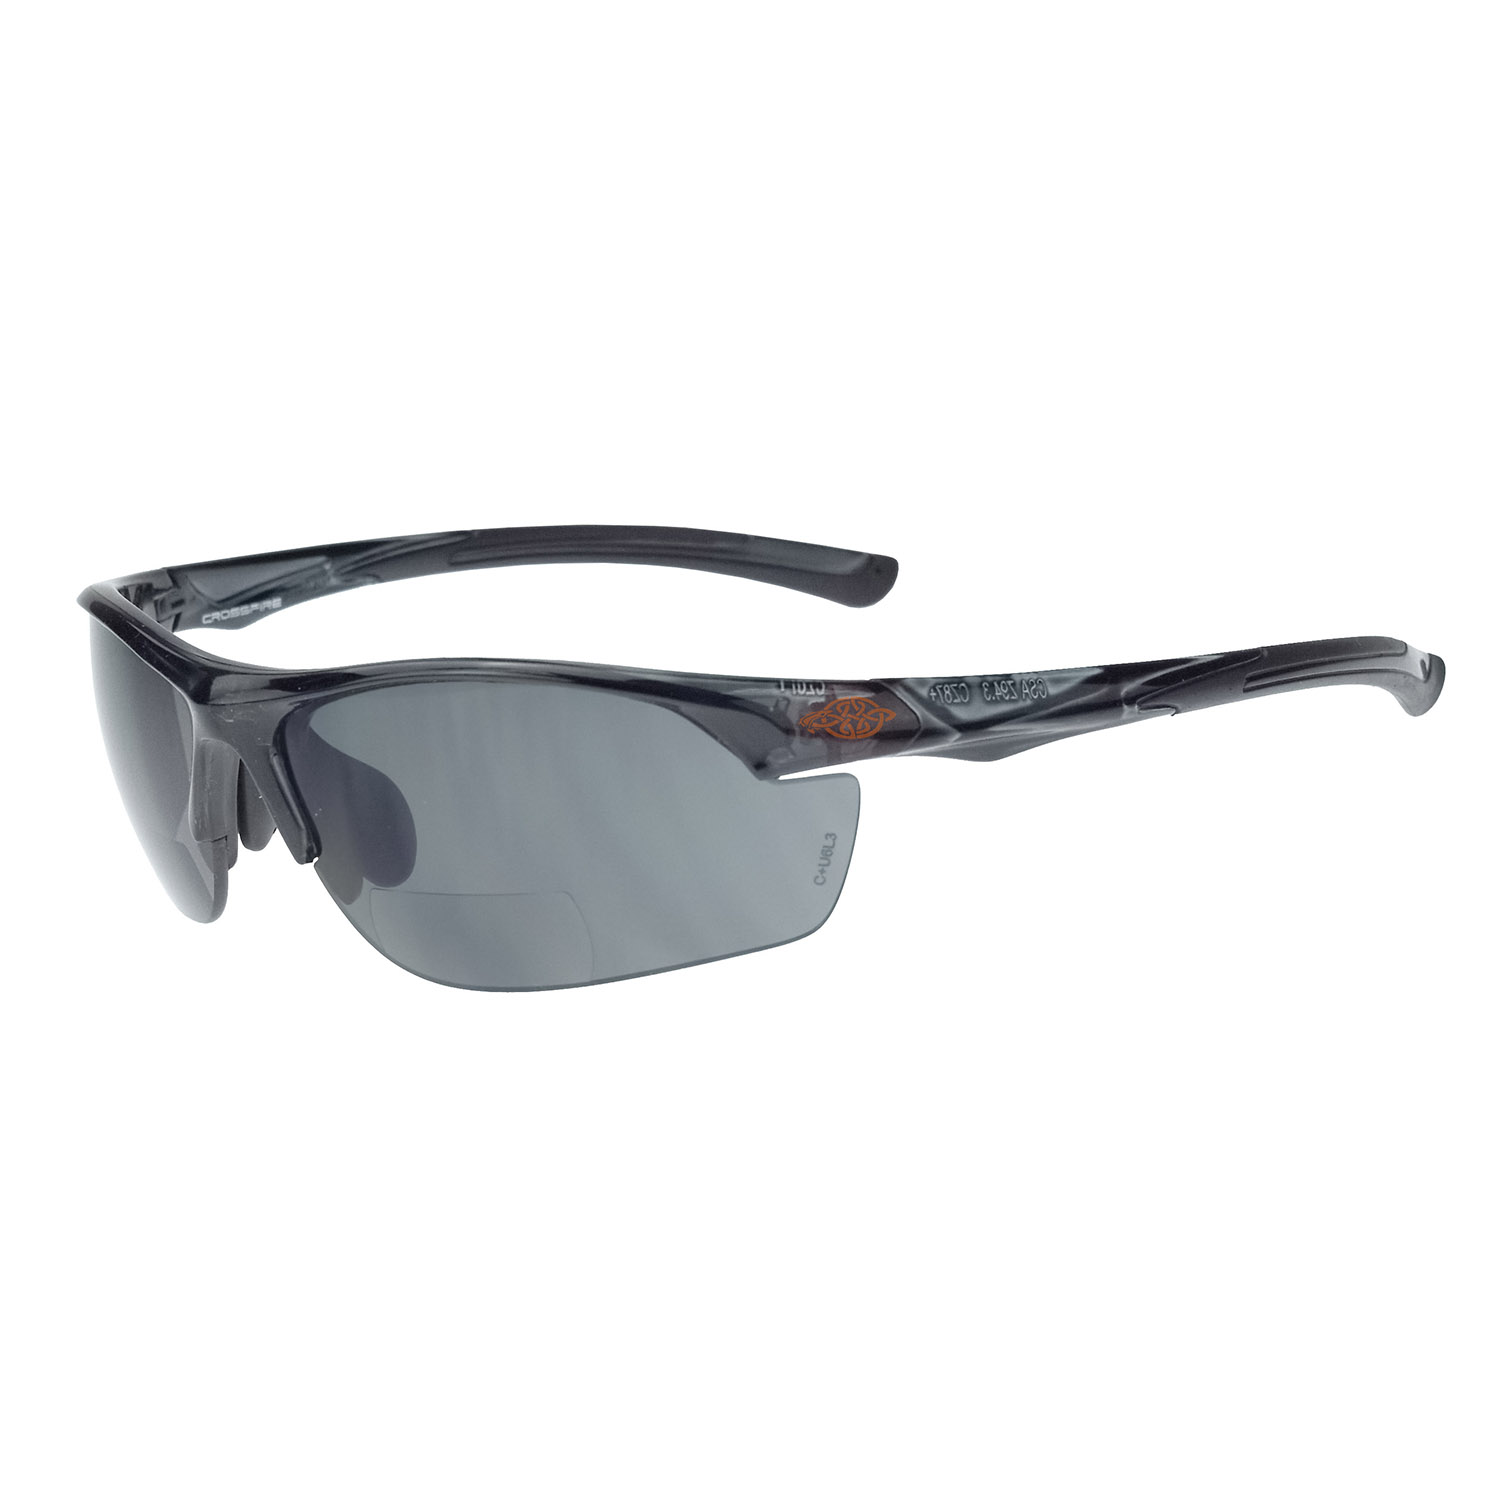 Crossfire AR3 Bifocal Safety Eyewear